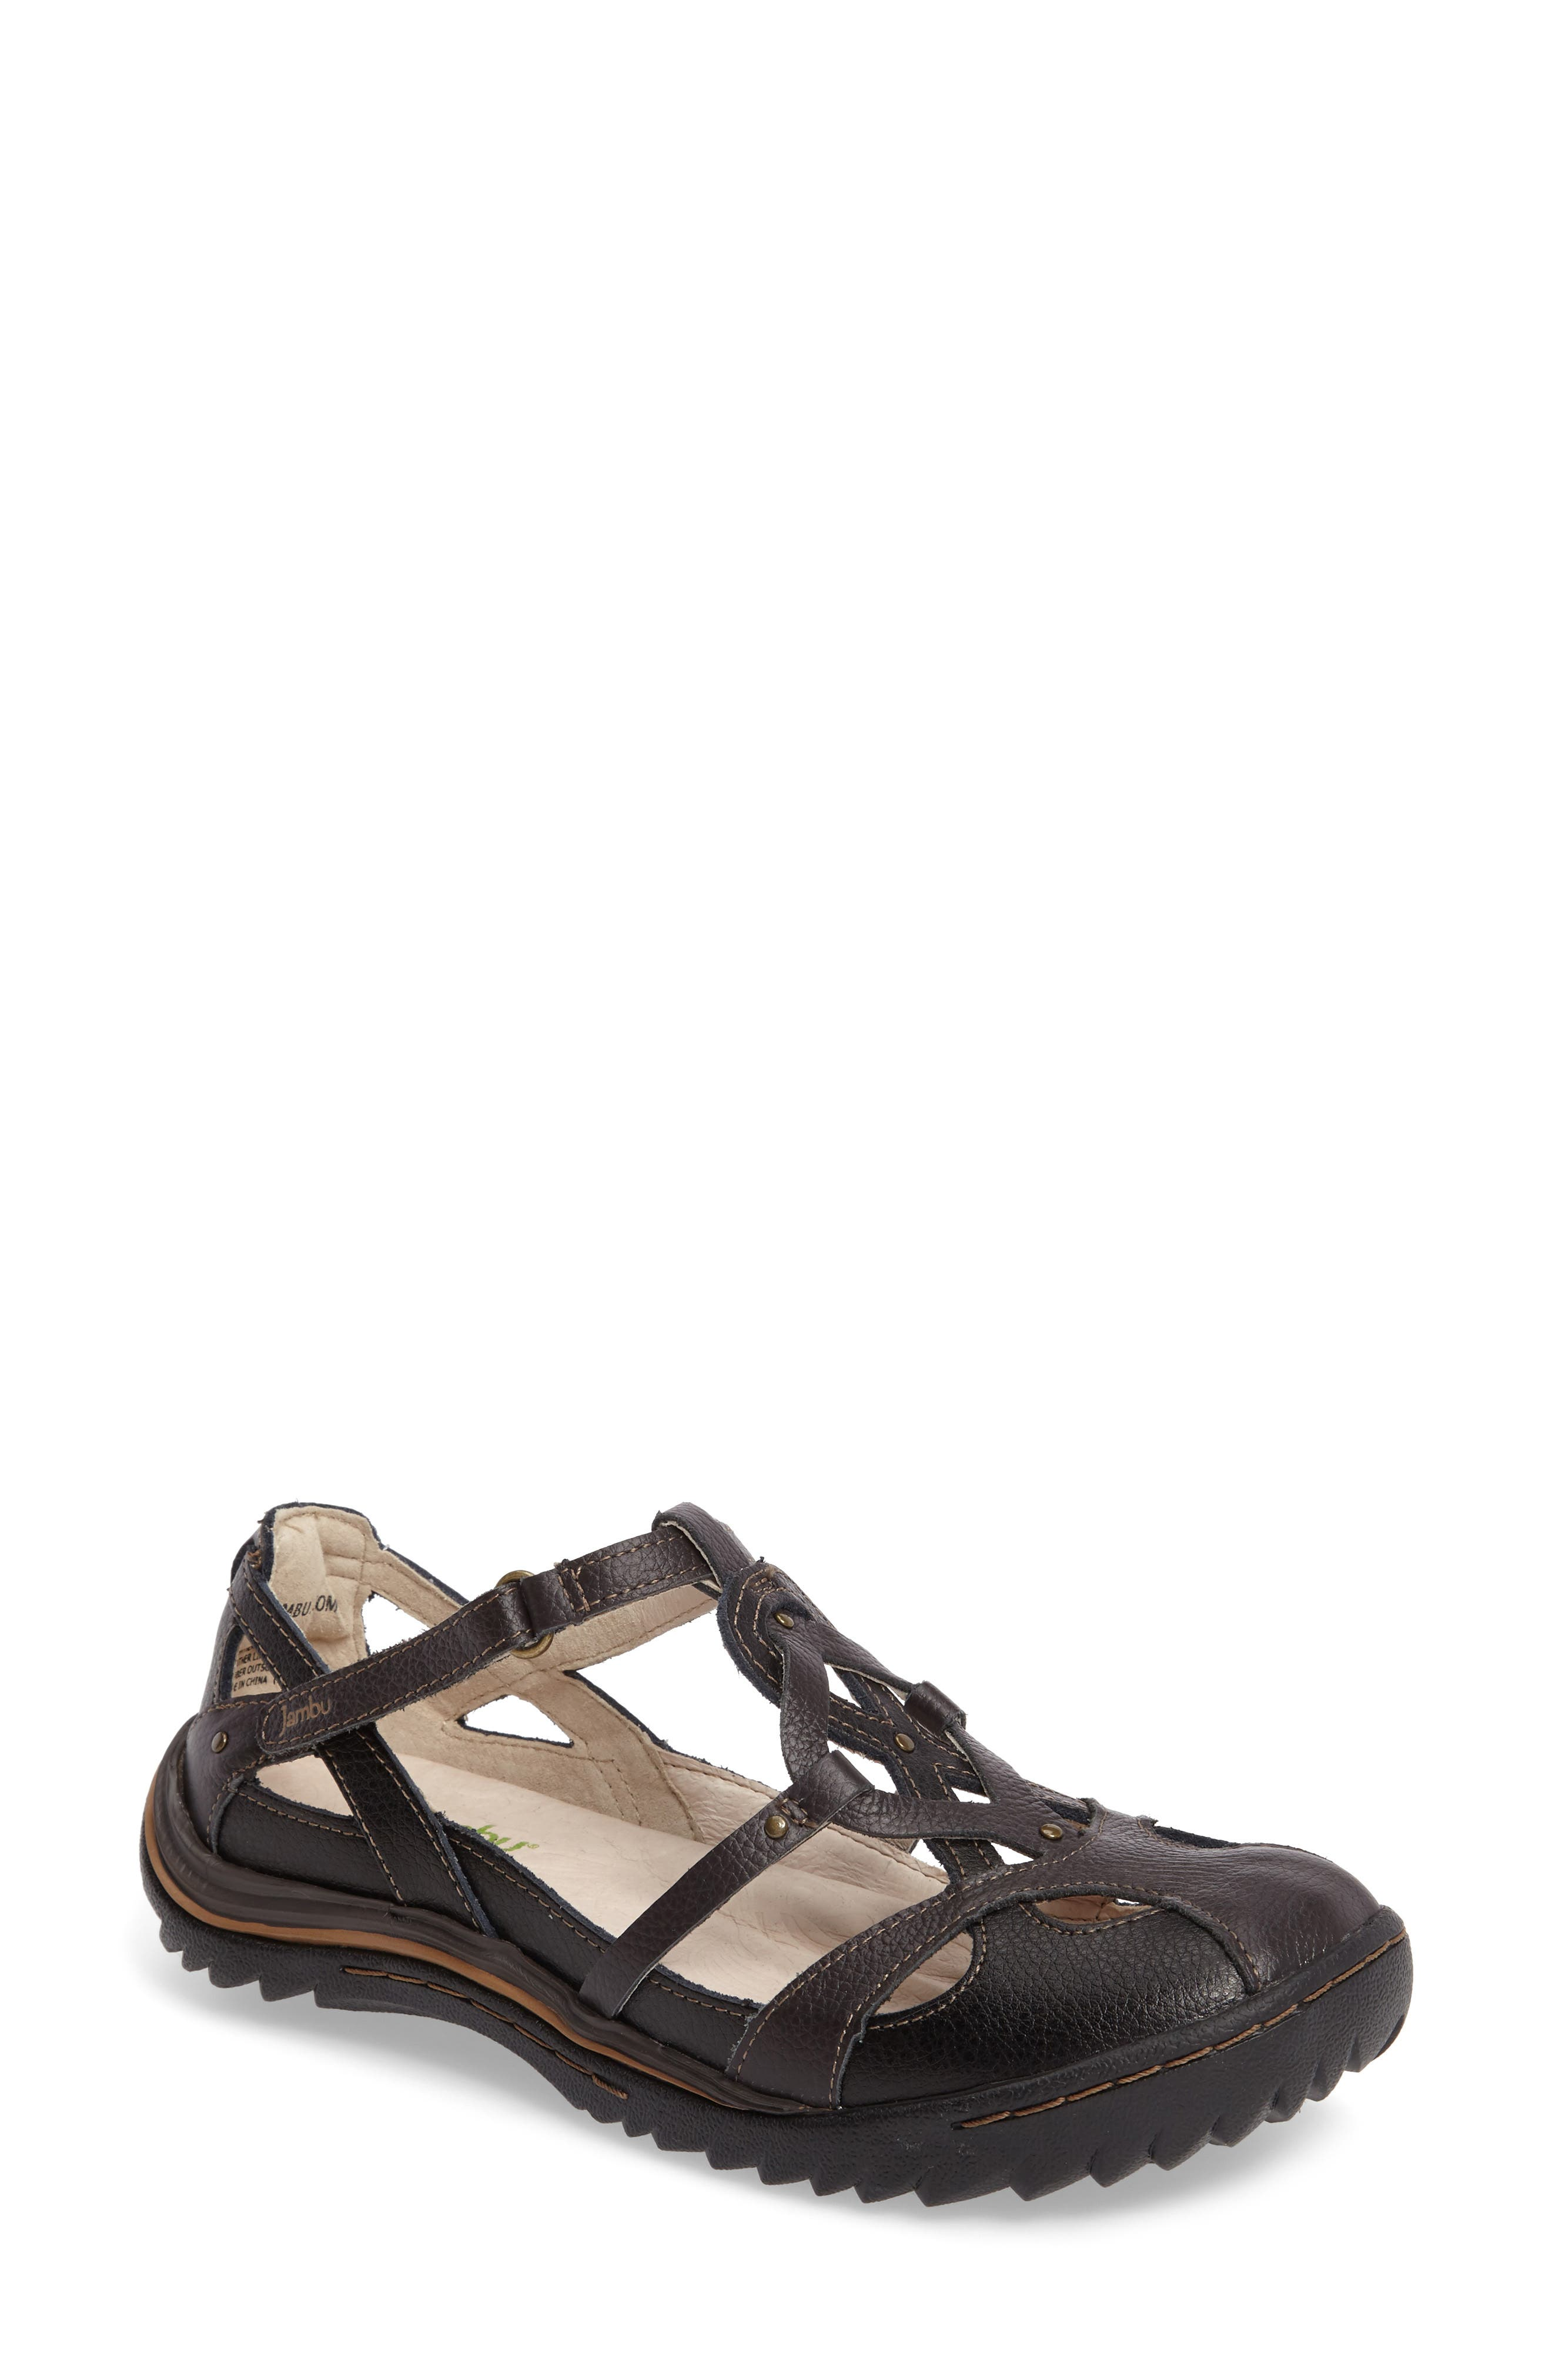 Spain Studded Strappy Sneaker,                             Main thumbnail 1, color,                             BLACK LEATHER